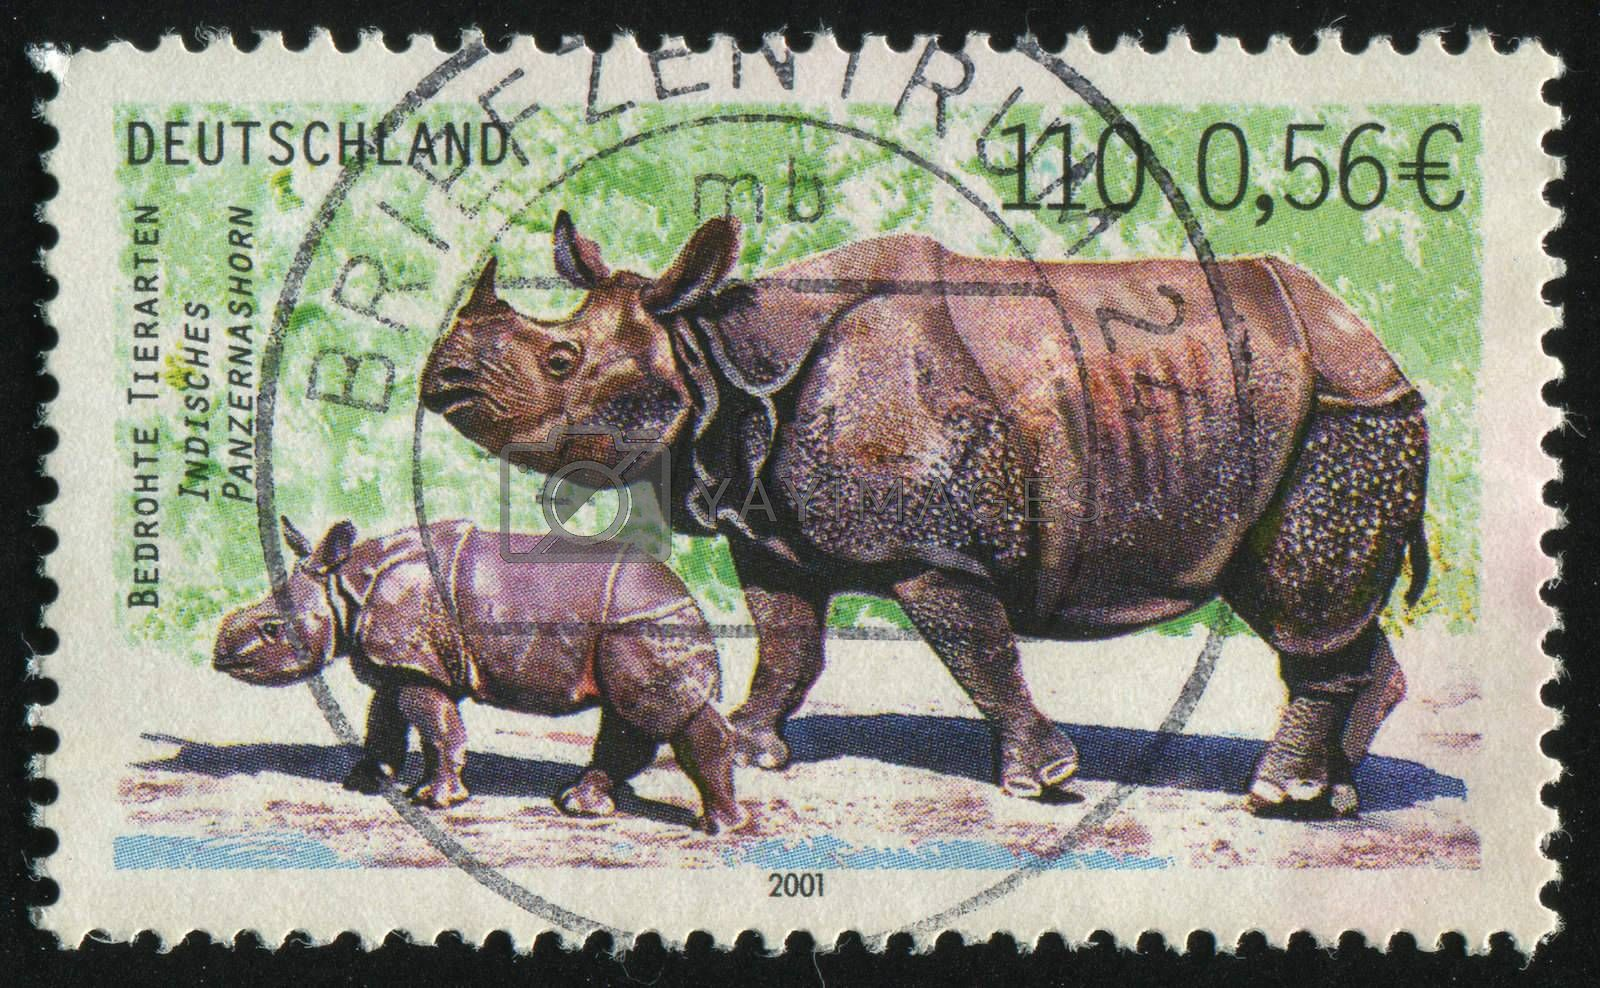 GERMANY- CIRCA 2001: stamp printed by Germany, shows Indian rhinoceros, circa 2001.